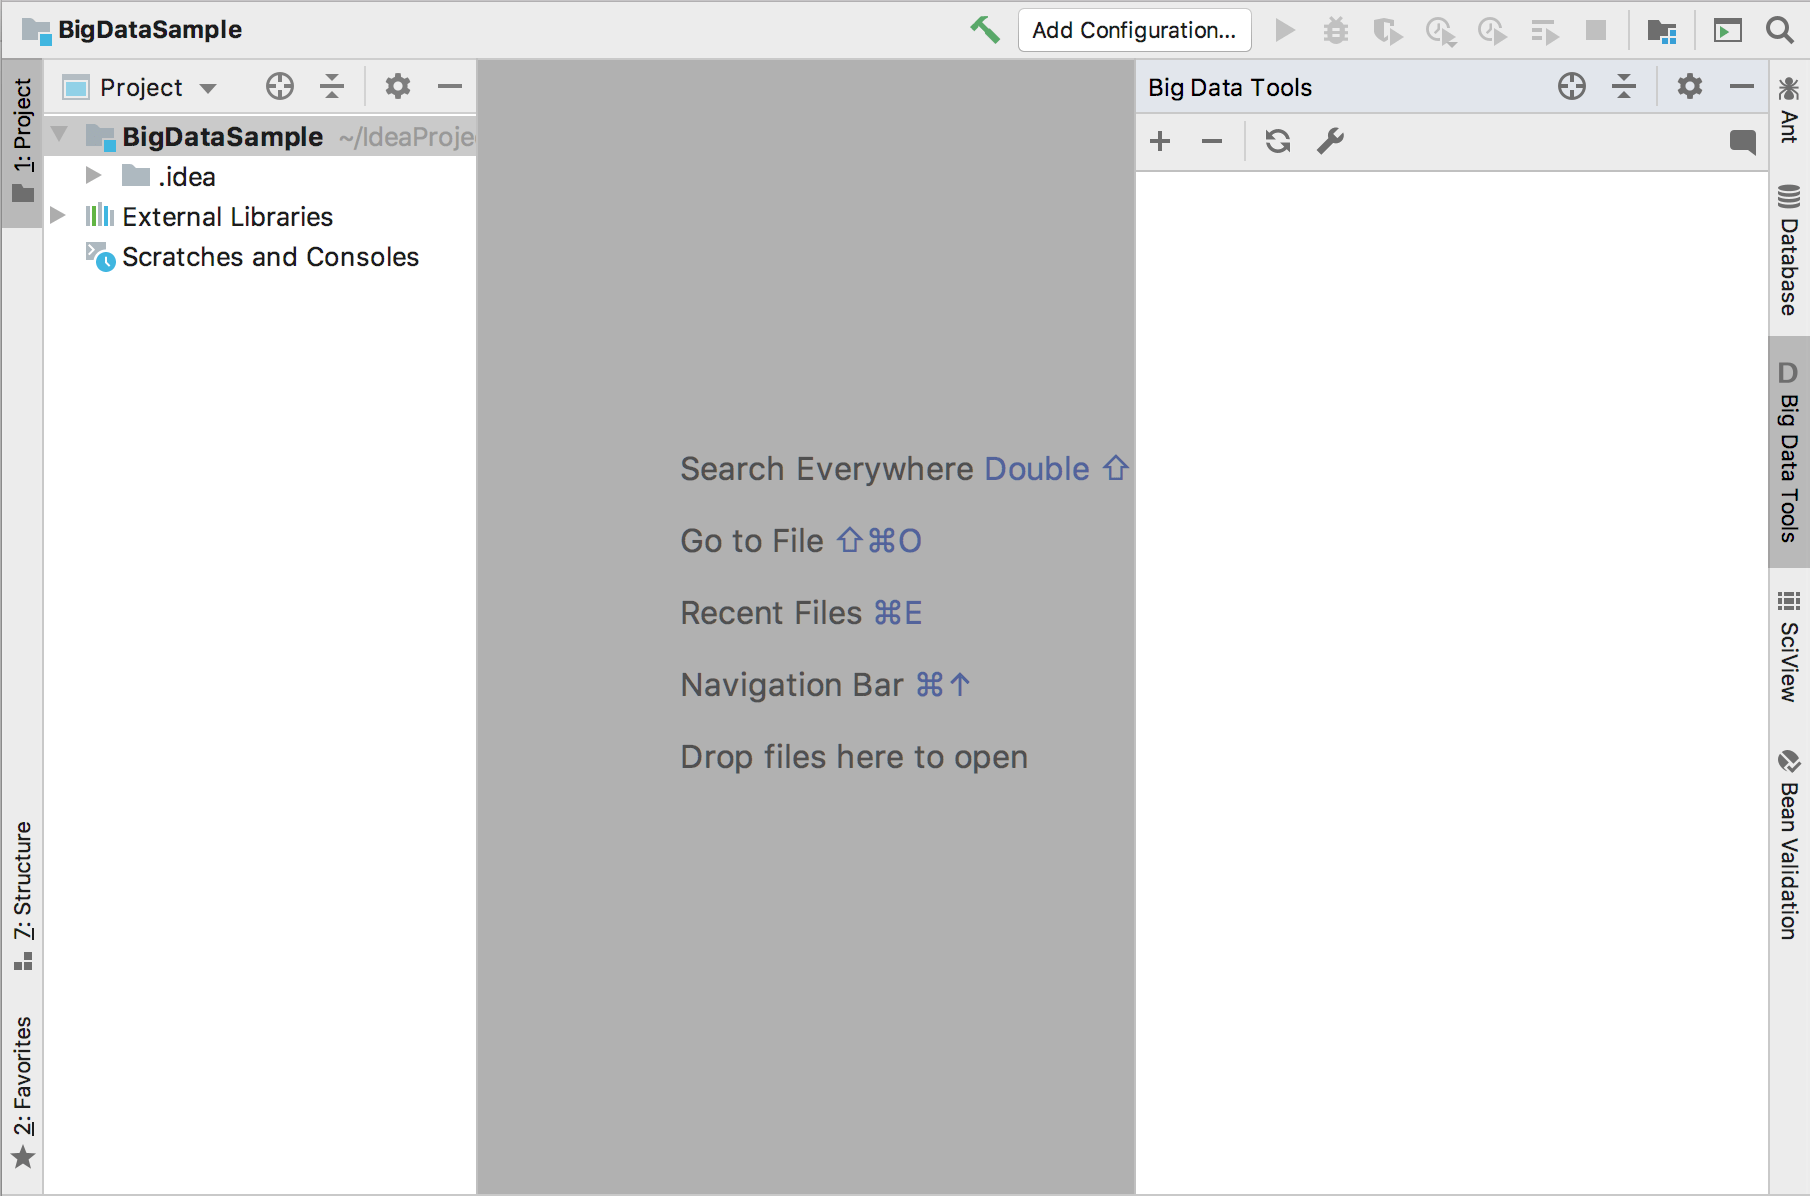 The view of IDEA Ultimate after the Big Data Tools plugin is installed